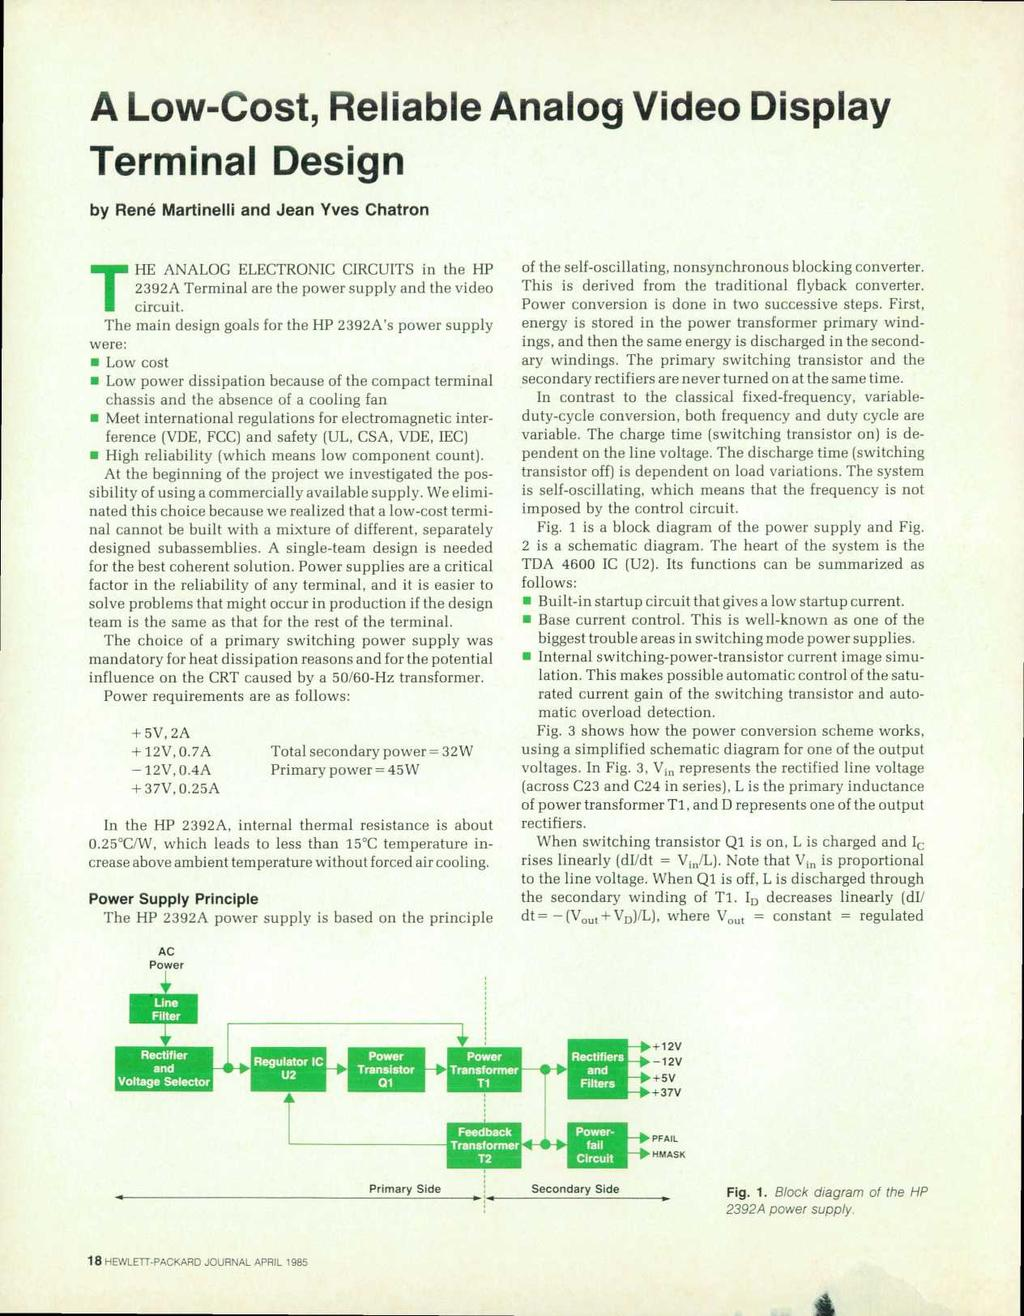 Lettpackard Hew April 19b5 Copr Hewlett Packard Co Pdf Circuits 8085 Projects Blog Archive Optical Sensor Circuit A Low Cost Reliable Analog Video Display Terminal Design By Rene Martinelli And Jean